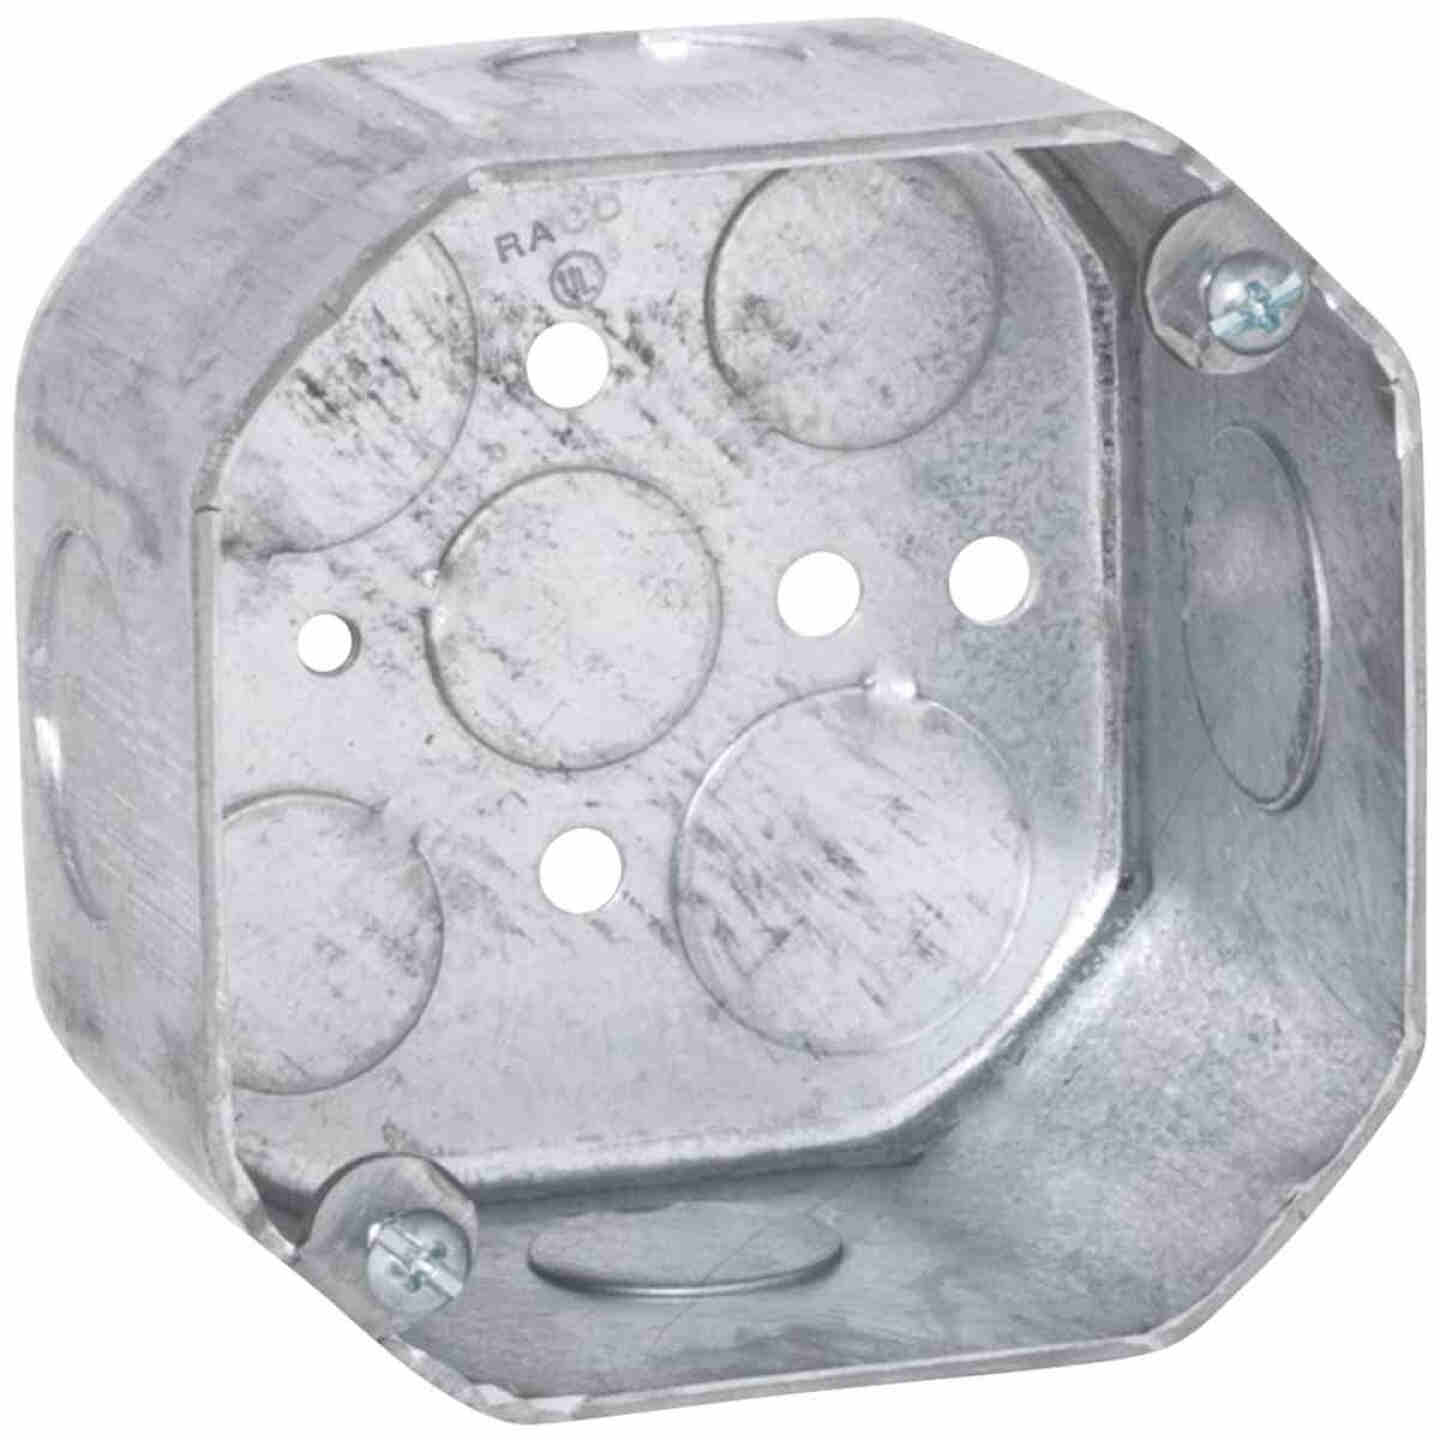 Raco Old Work 4 In. x 4 In. Octagon Box Image 1